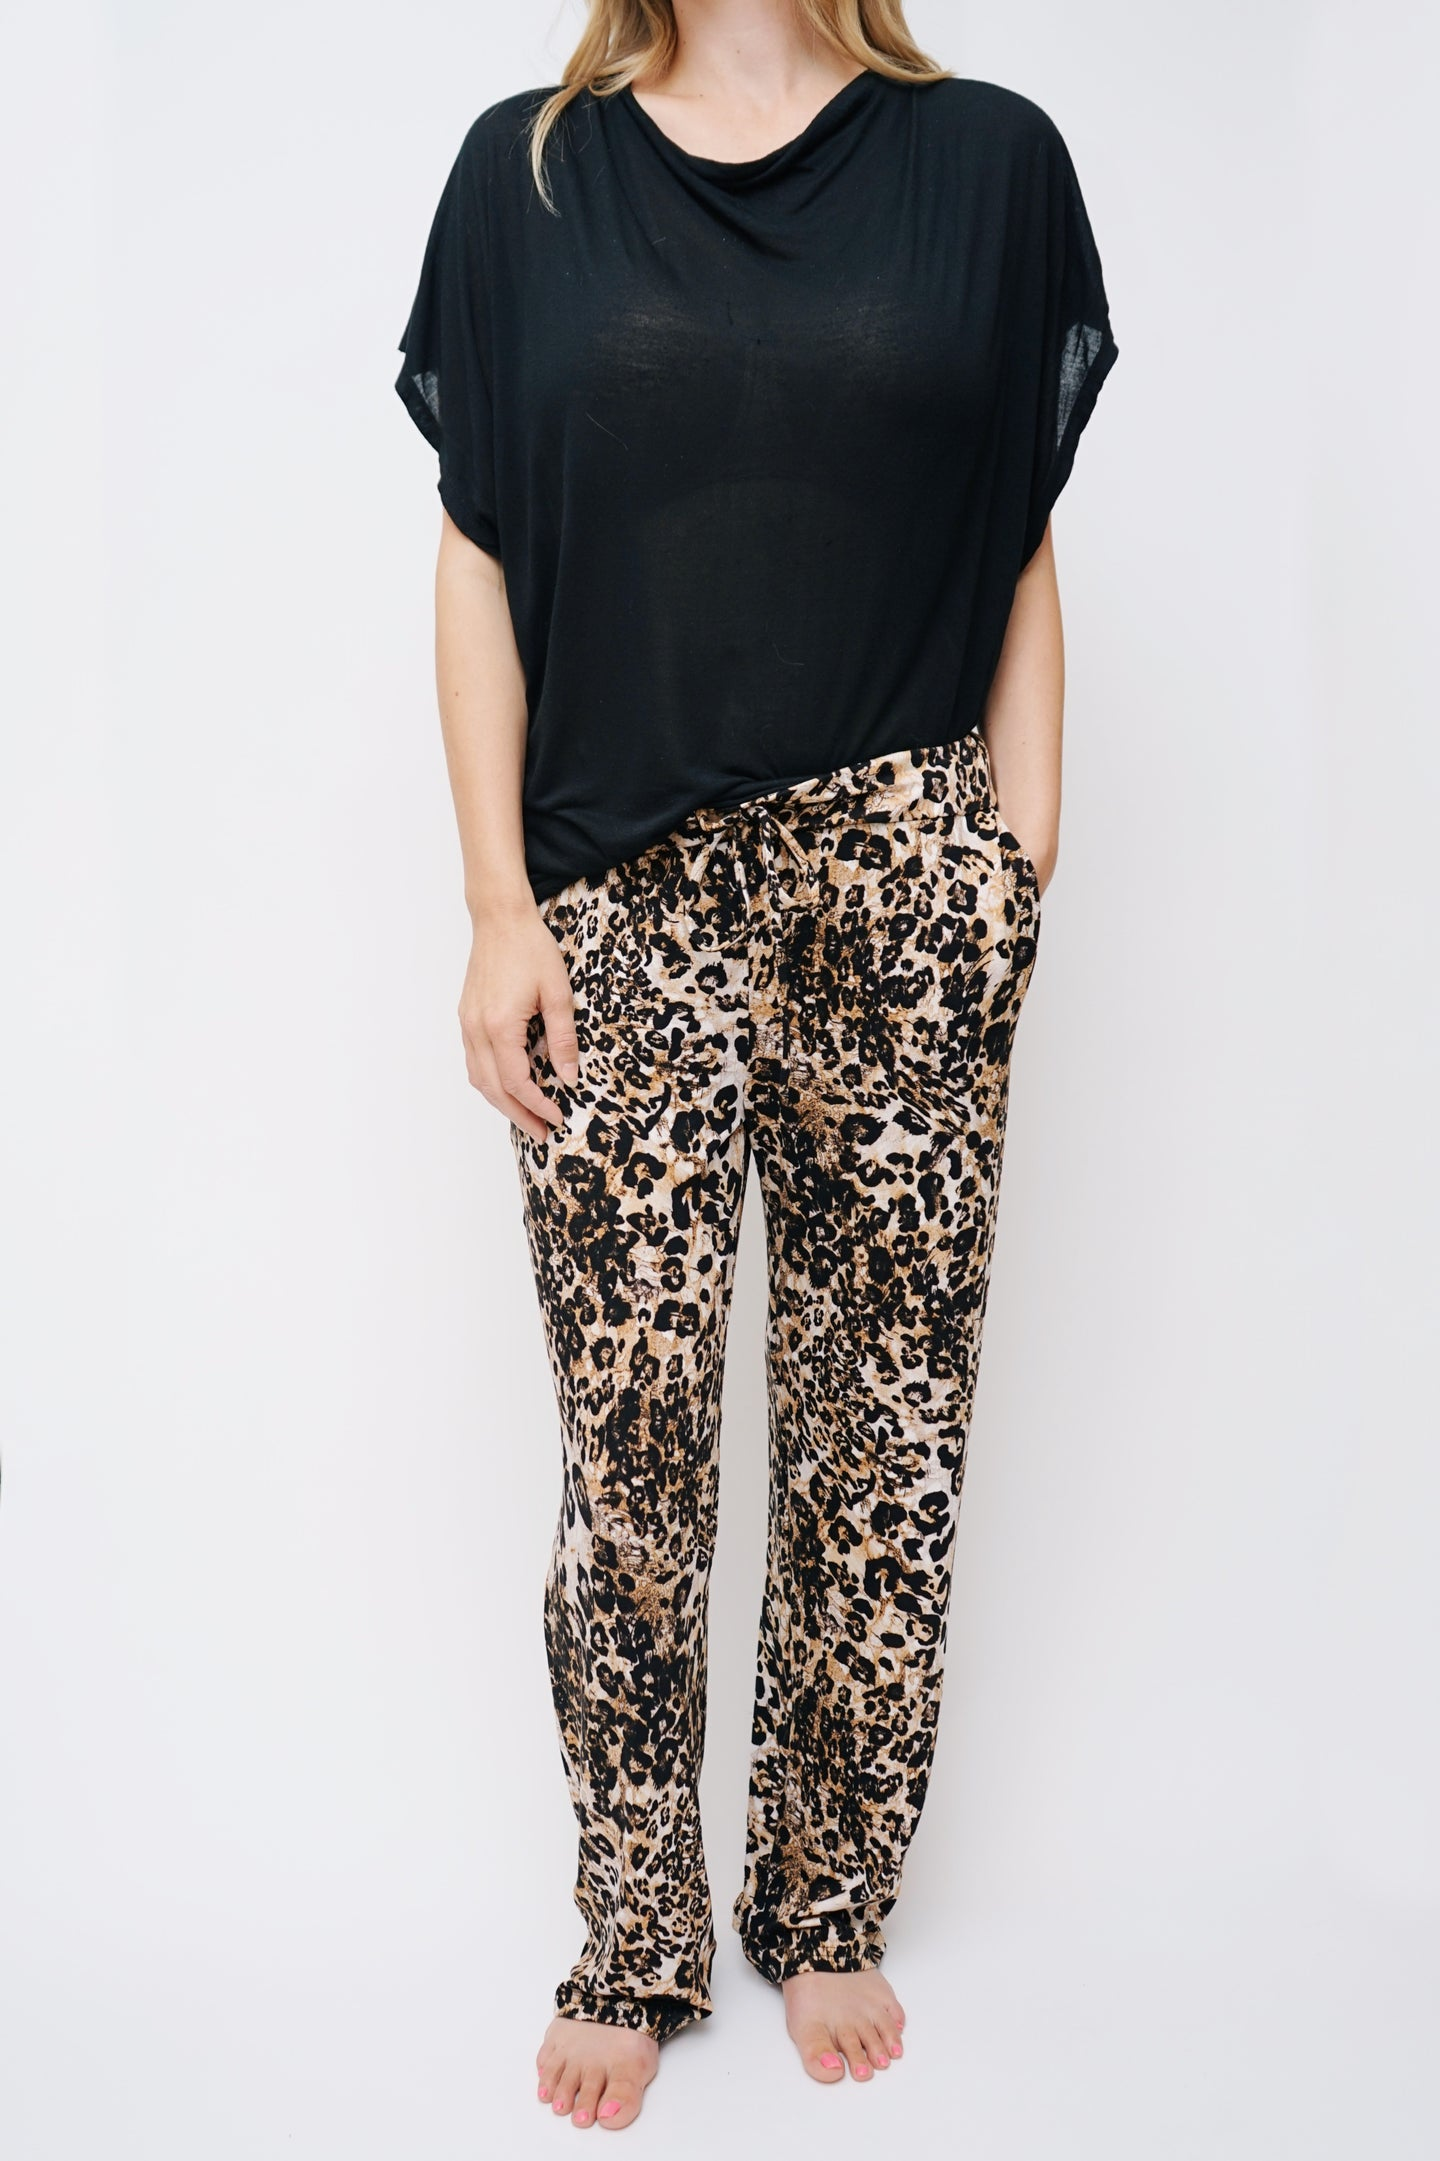 Leopard Lounge Pant - Lav and Kush